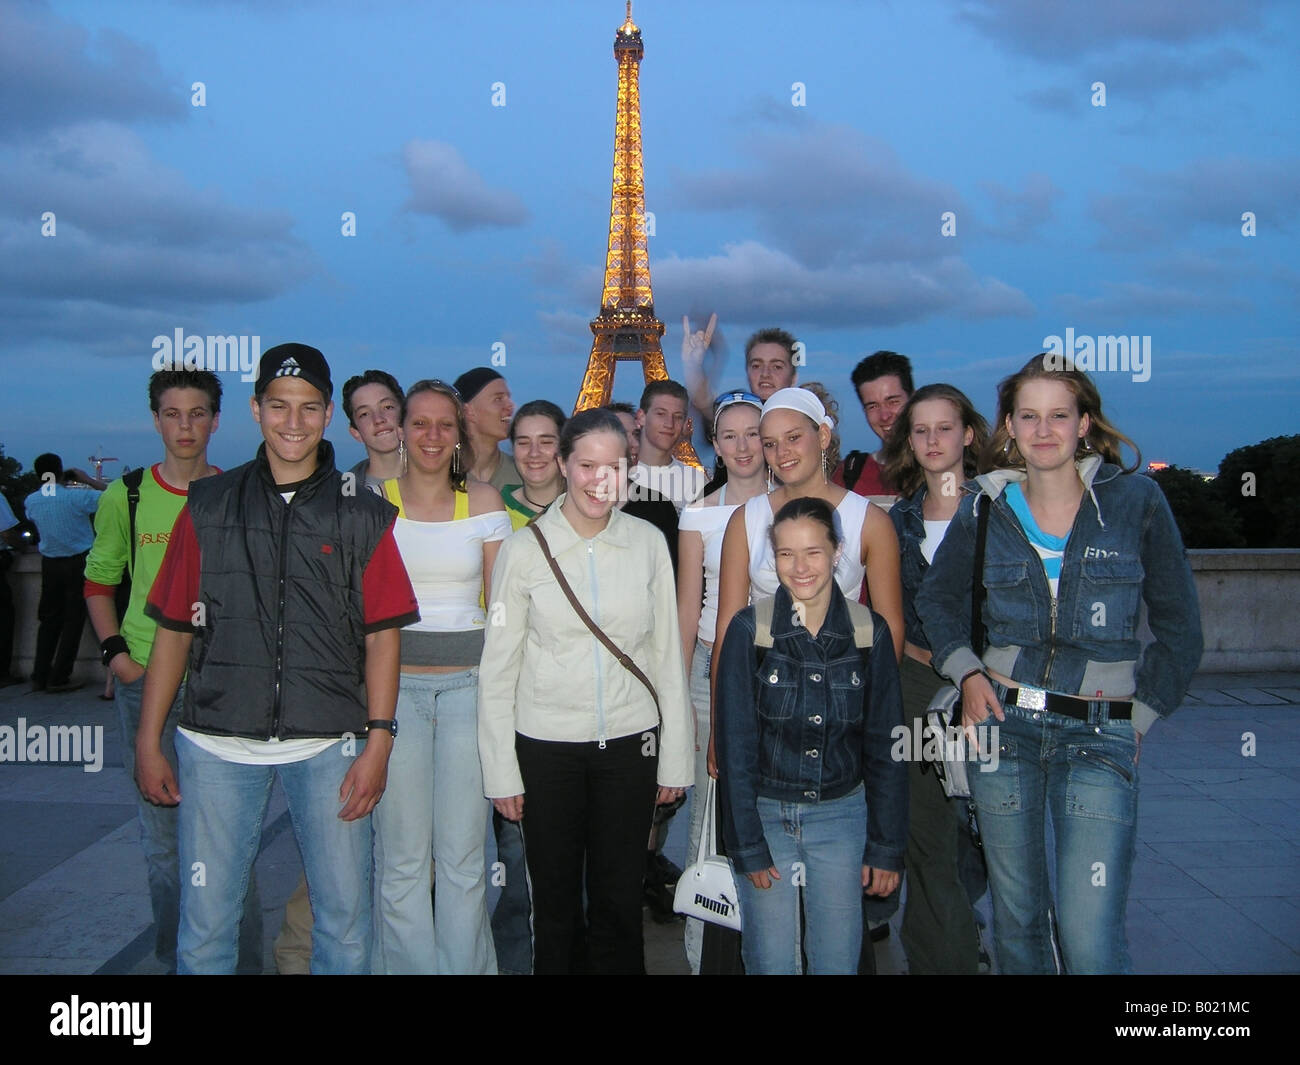 snapshot of school group in front of Eiffel Tower at dusk Paris France Stock Photo